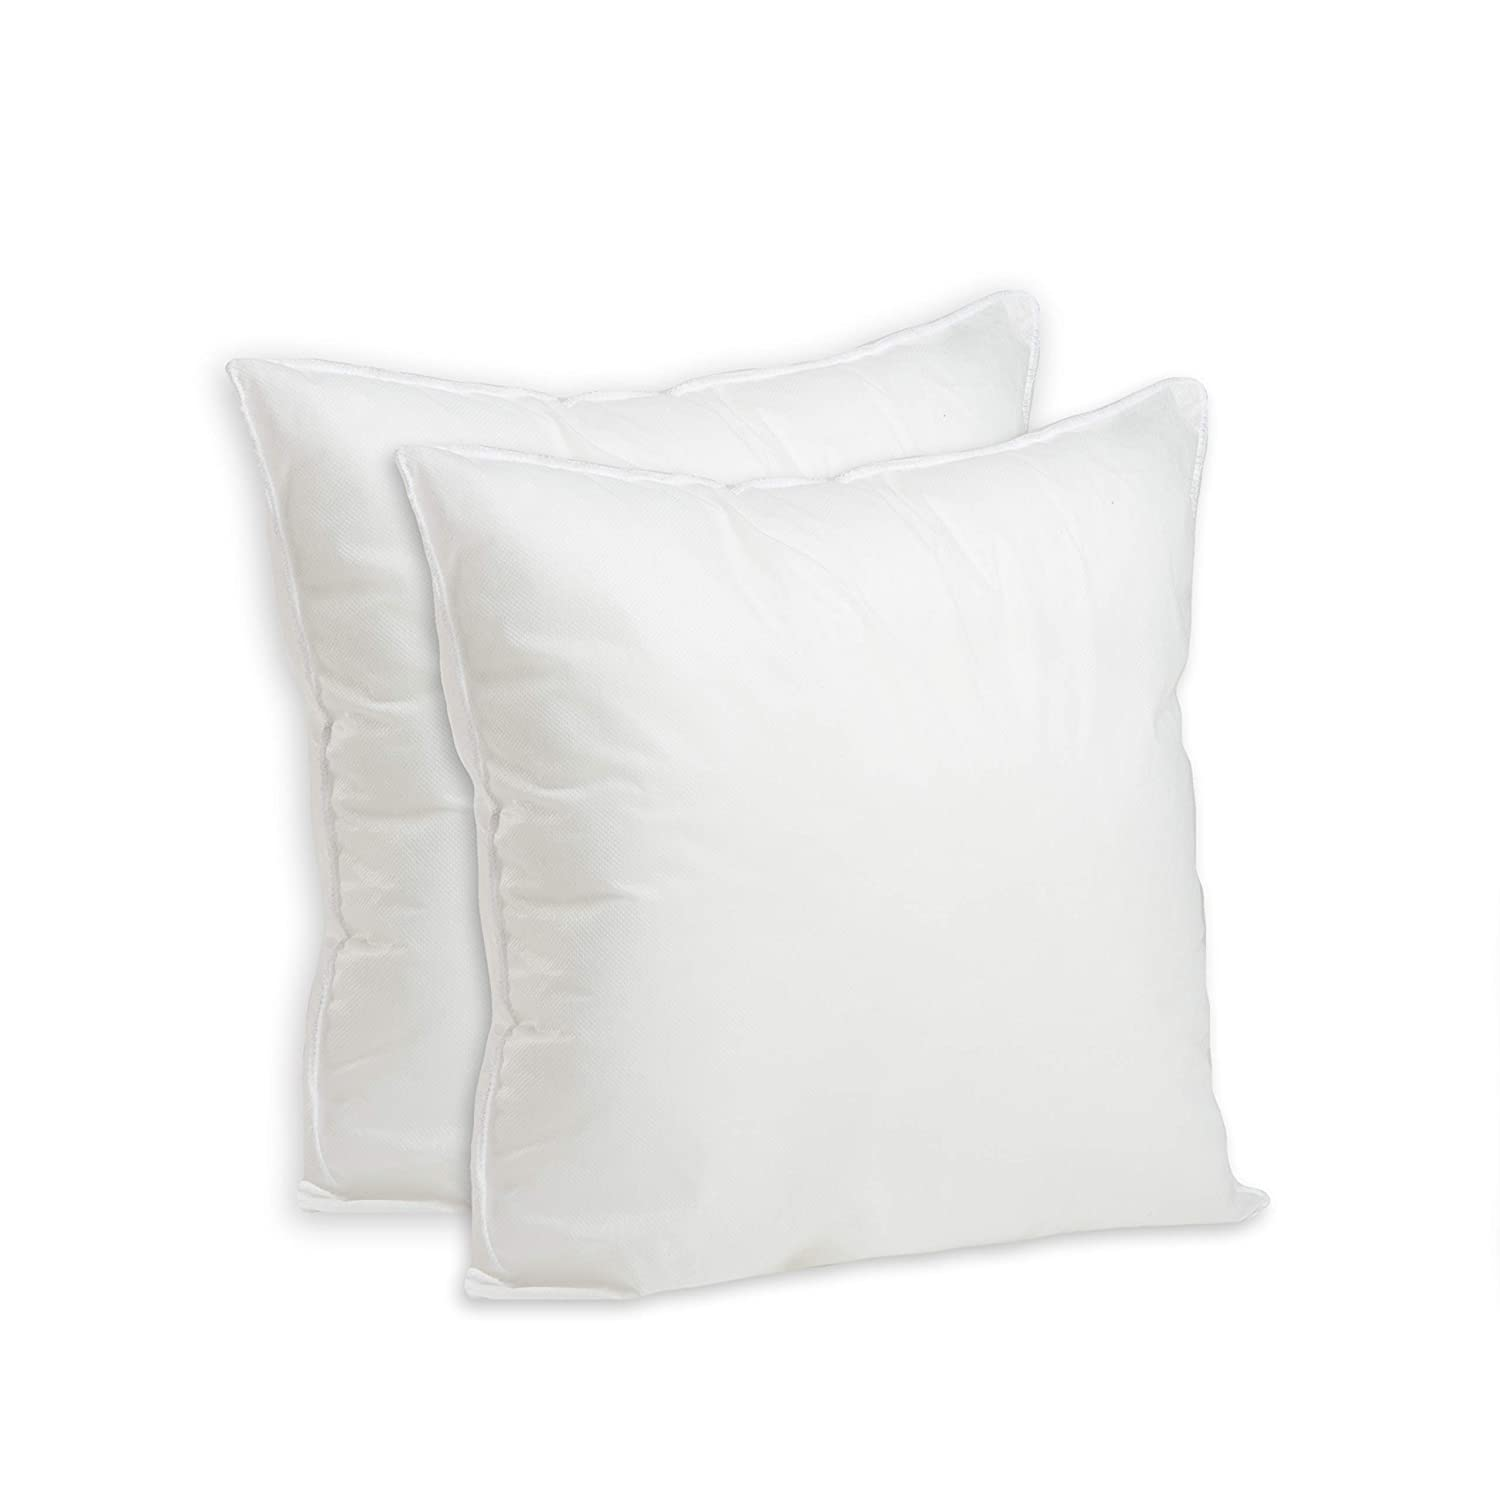 Set of 2-12 x 12 Premium Hypoallergenic Stuffer Pillow Insert Sham Square Form Polyester, Standard/White - Made in USA Foamily 2Pack-Pillow12